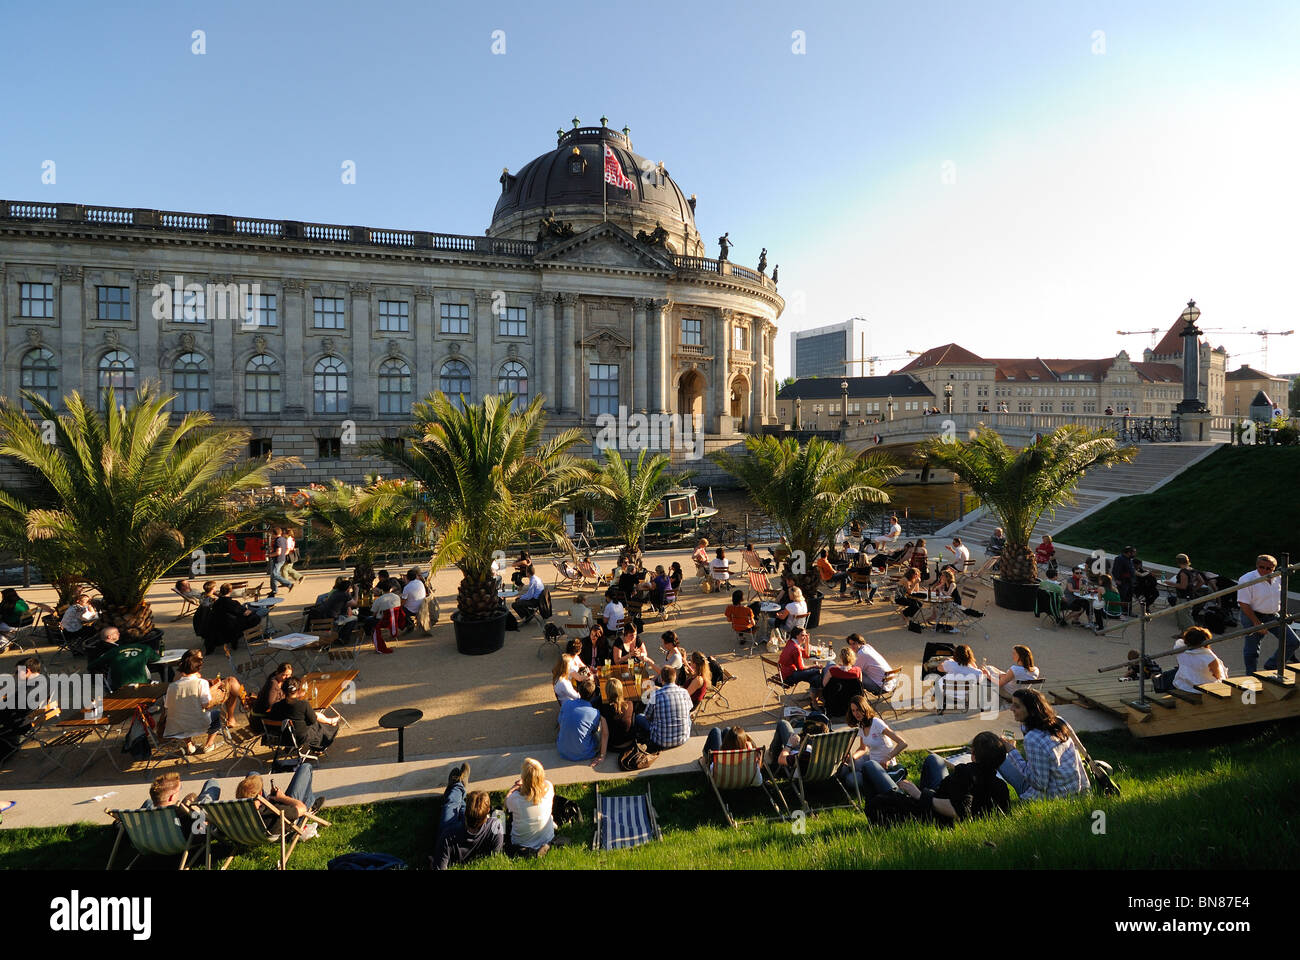 'Strandbar Mitte' city beach with the Bodemuseum museum, lido location opposite the Museumsinsel island, - Stock Image